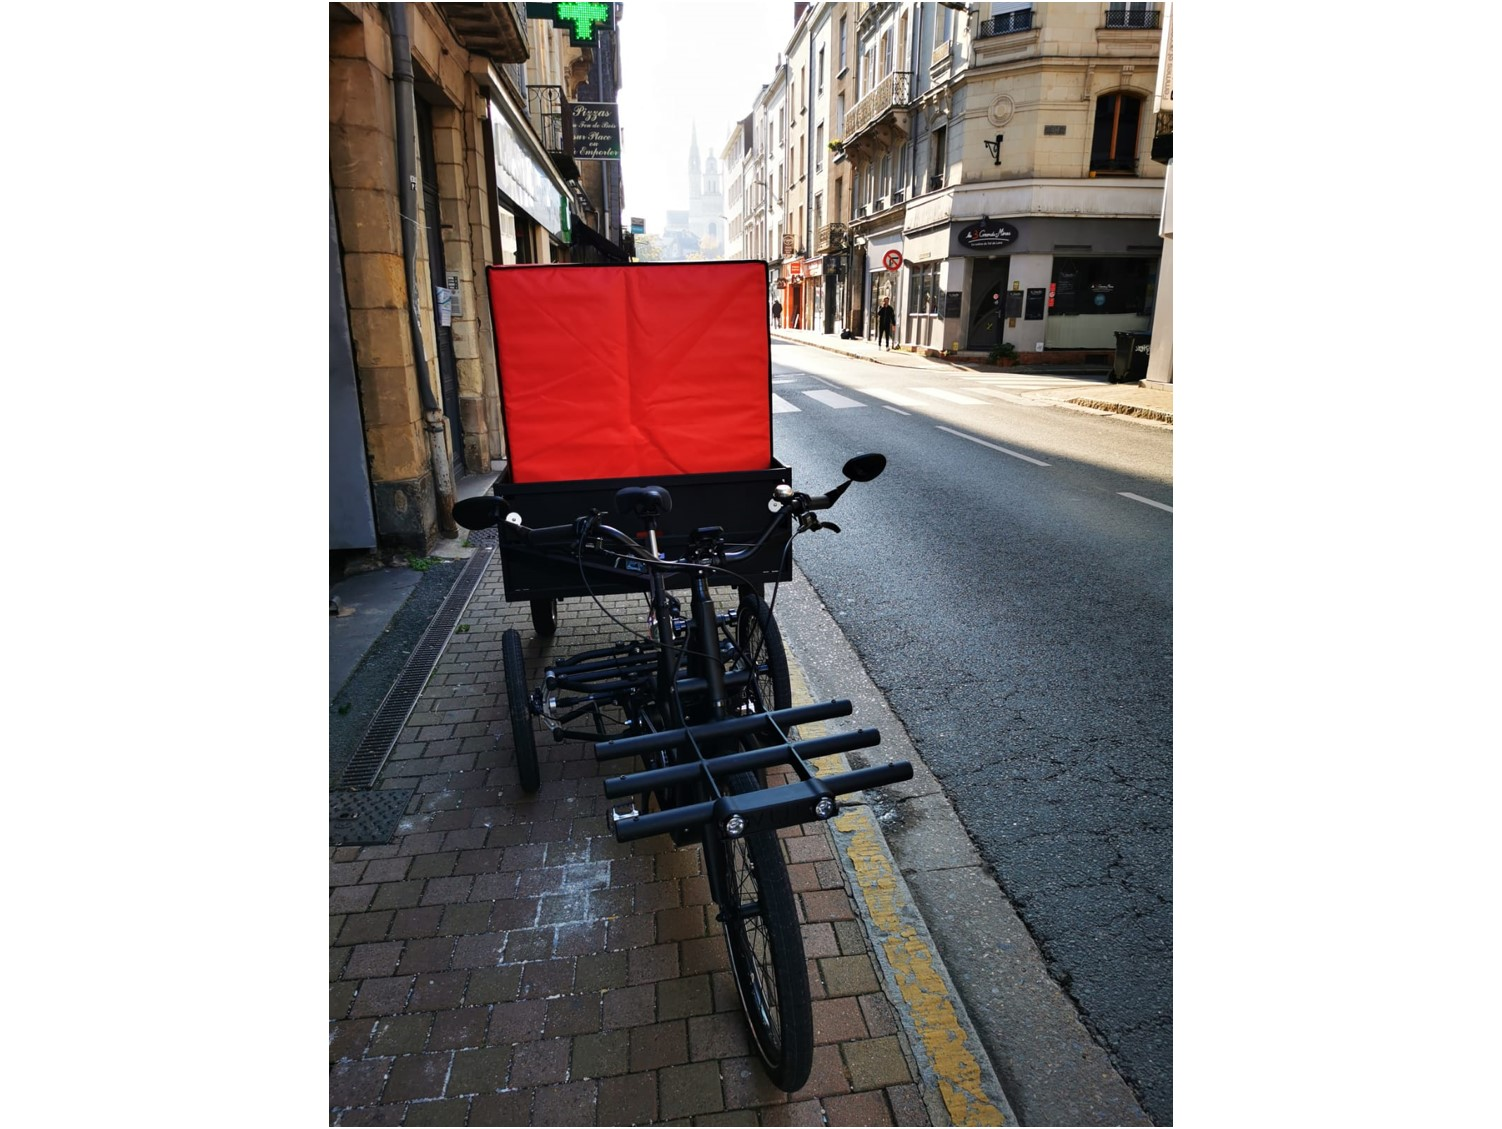 Refrigerated insulated container for bicycle trailer. Soft and silent delivery of fresh products in the city centre.